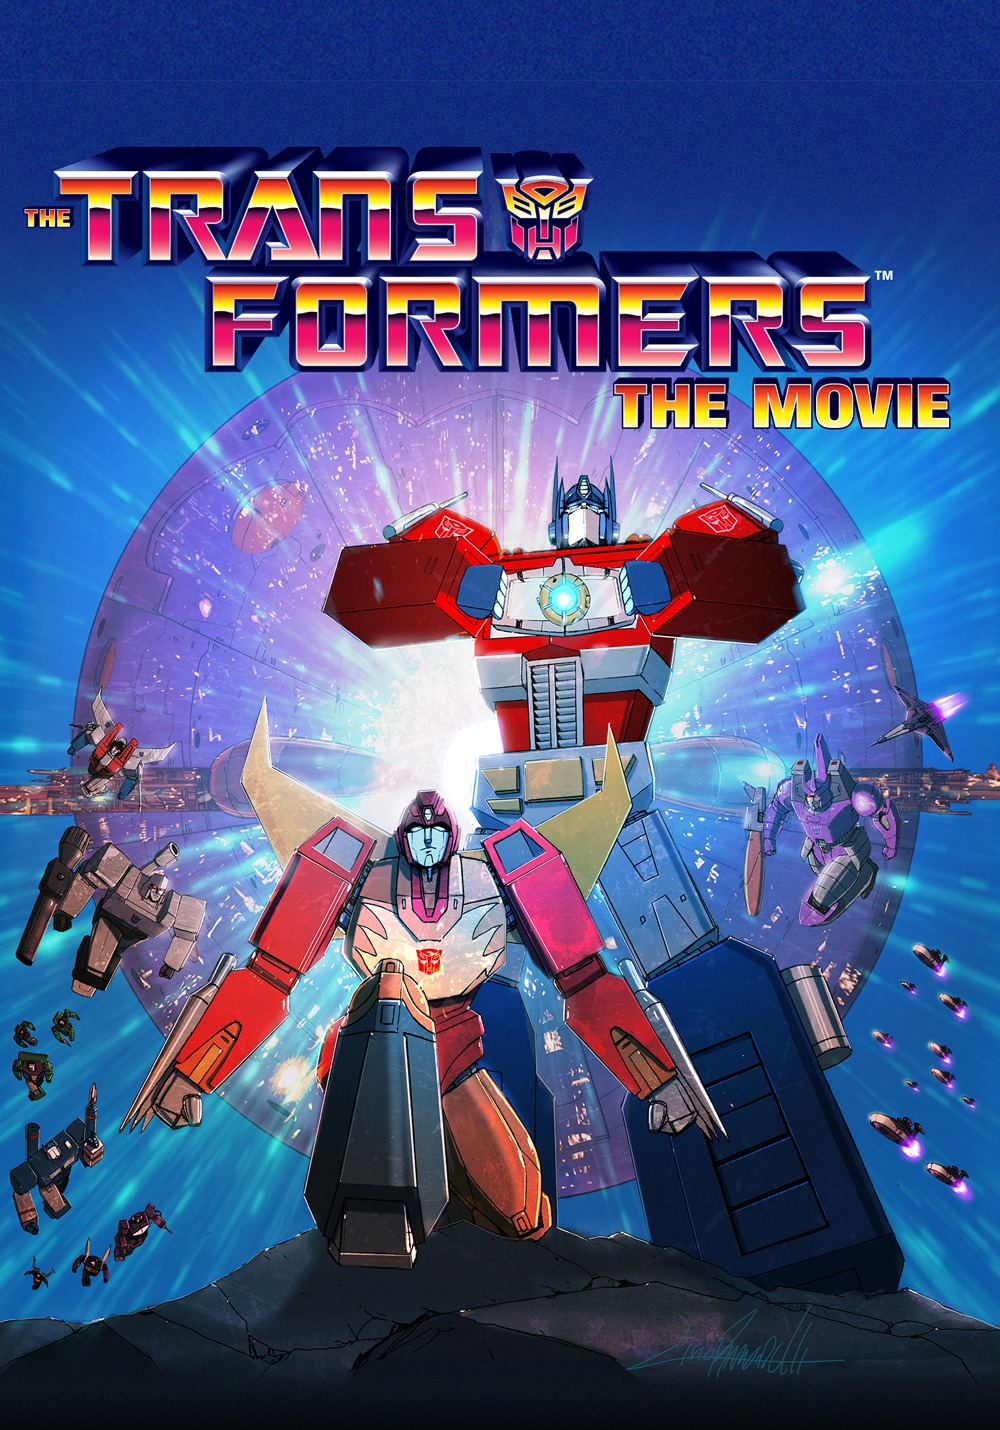 The Transformers 1986 Movie Event In Movie Theaters Fathom Events